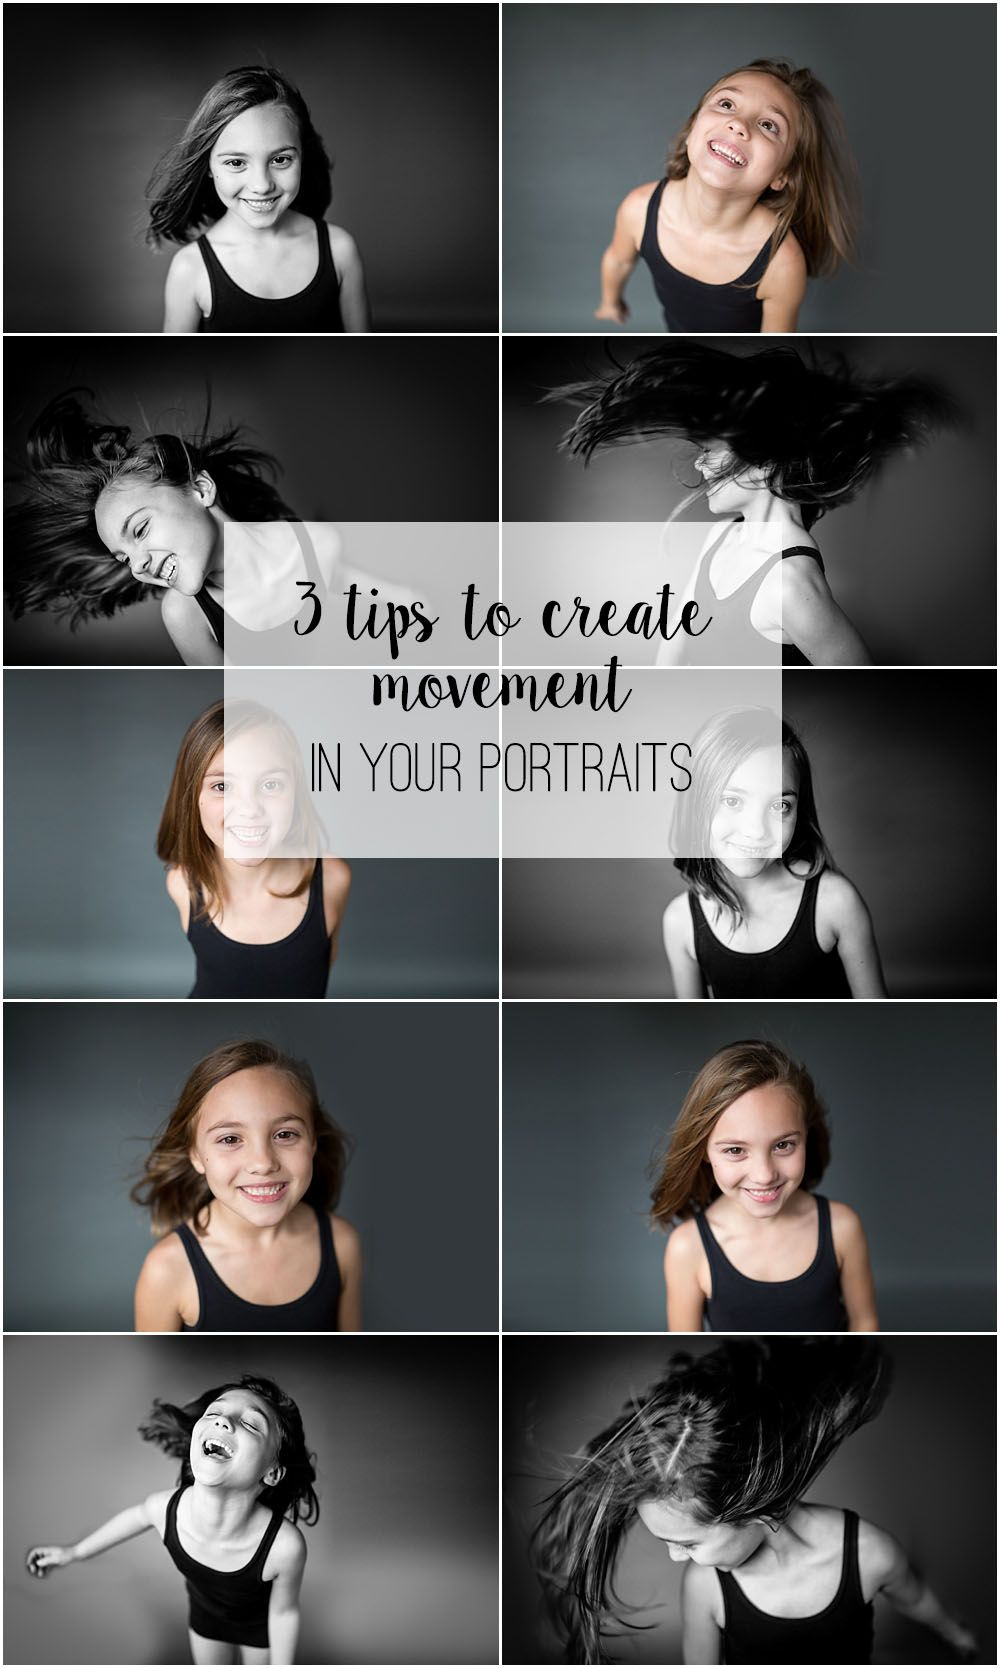 3 Tips to Create Movement in Your Portraits   Marcie Reif Atlanta Photographer